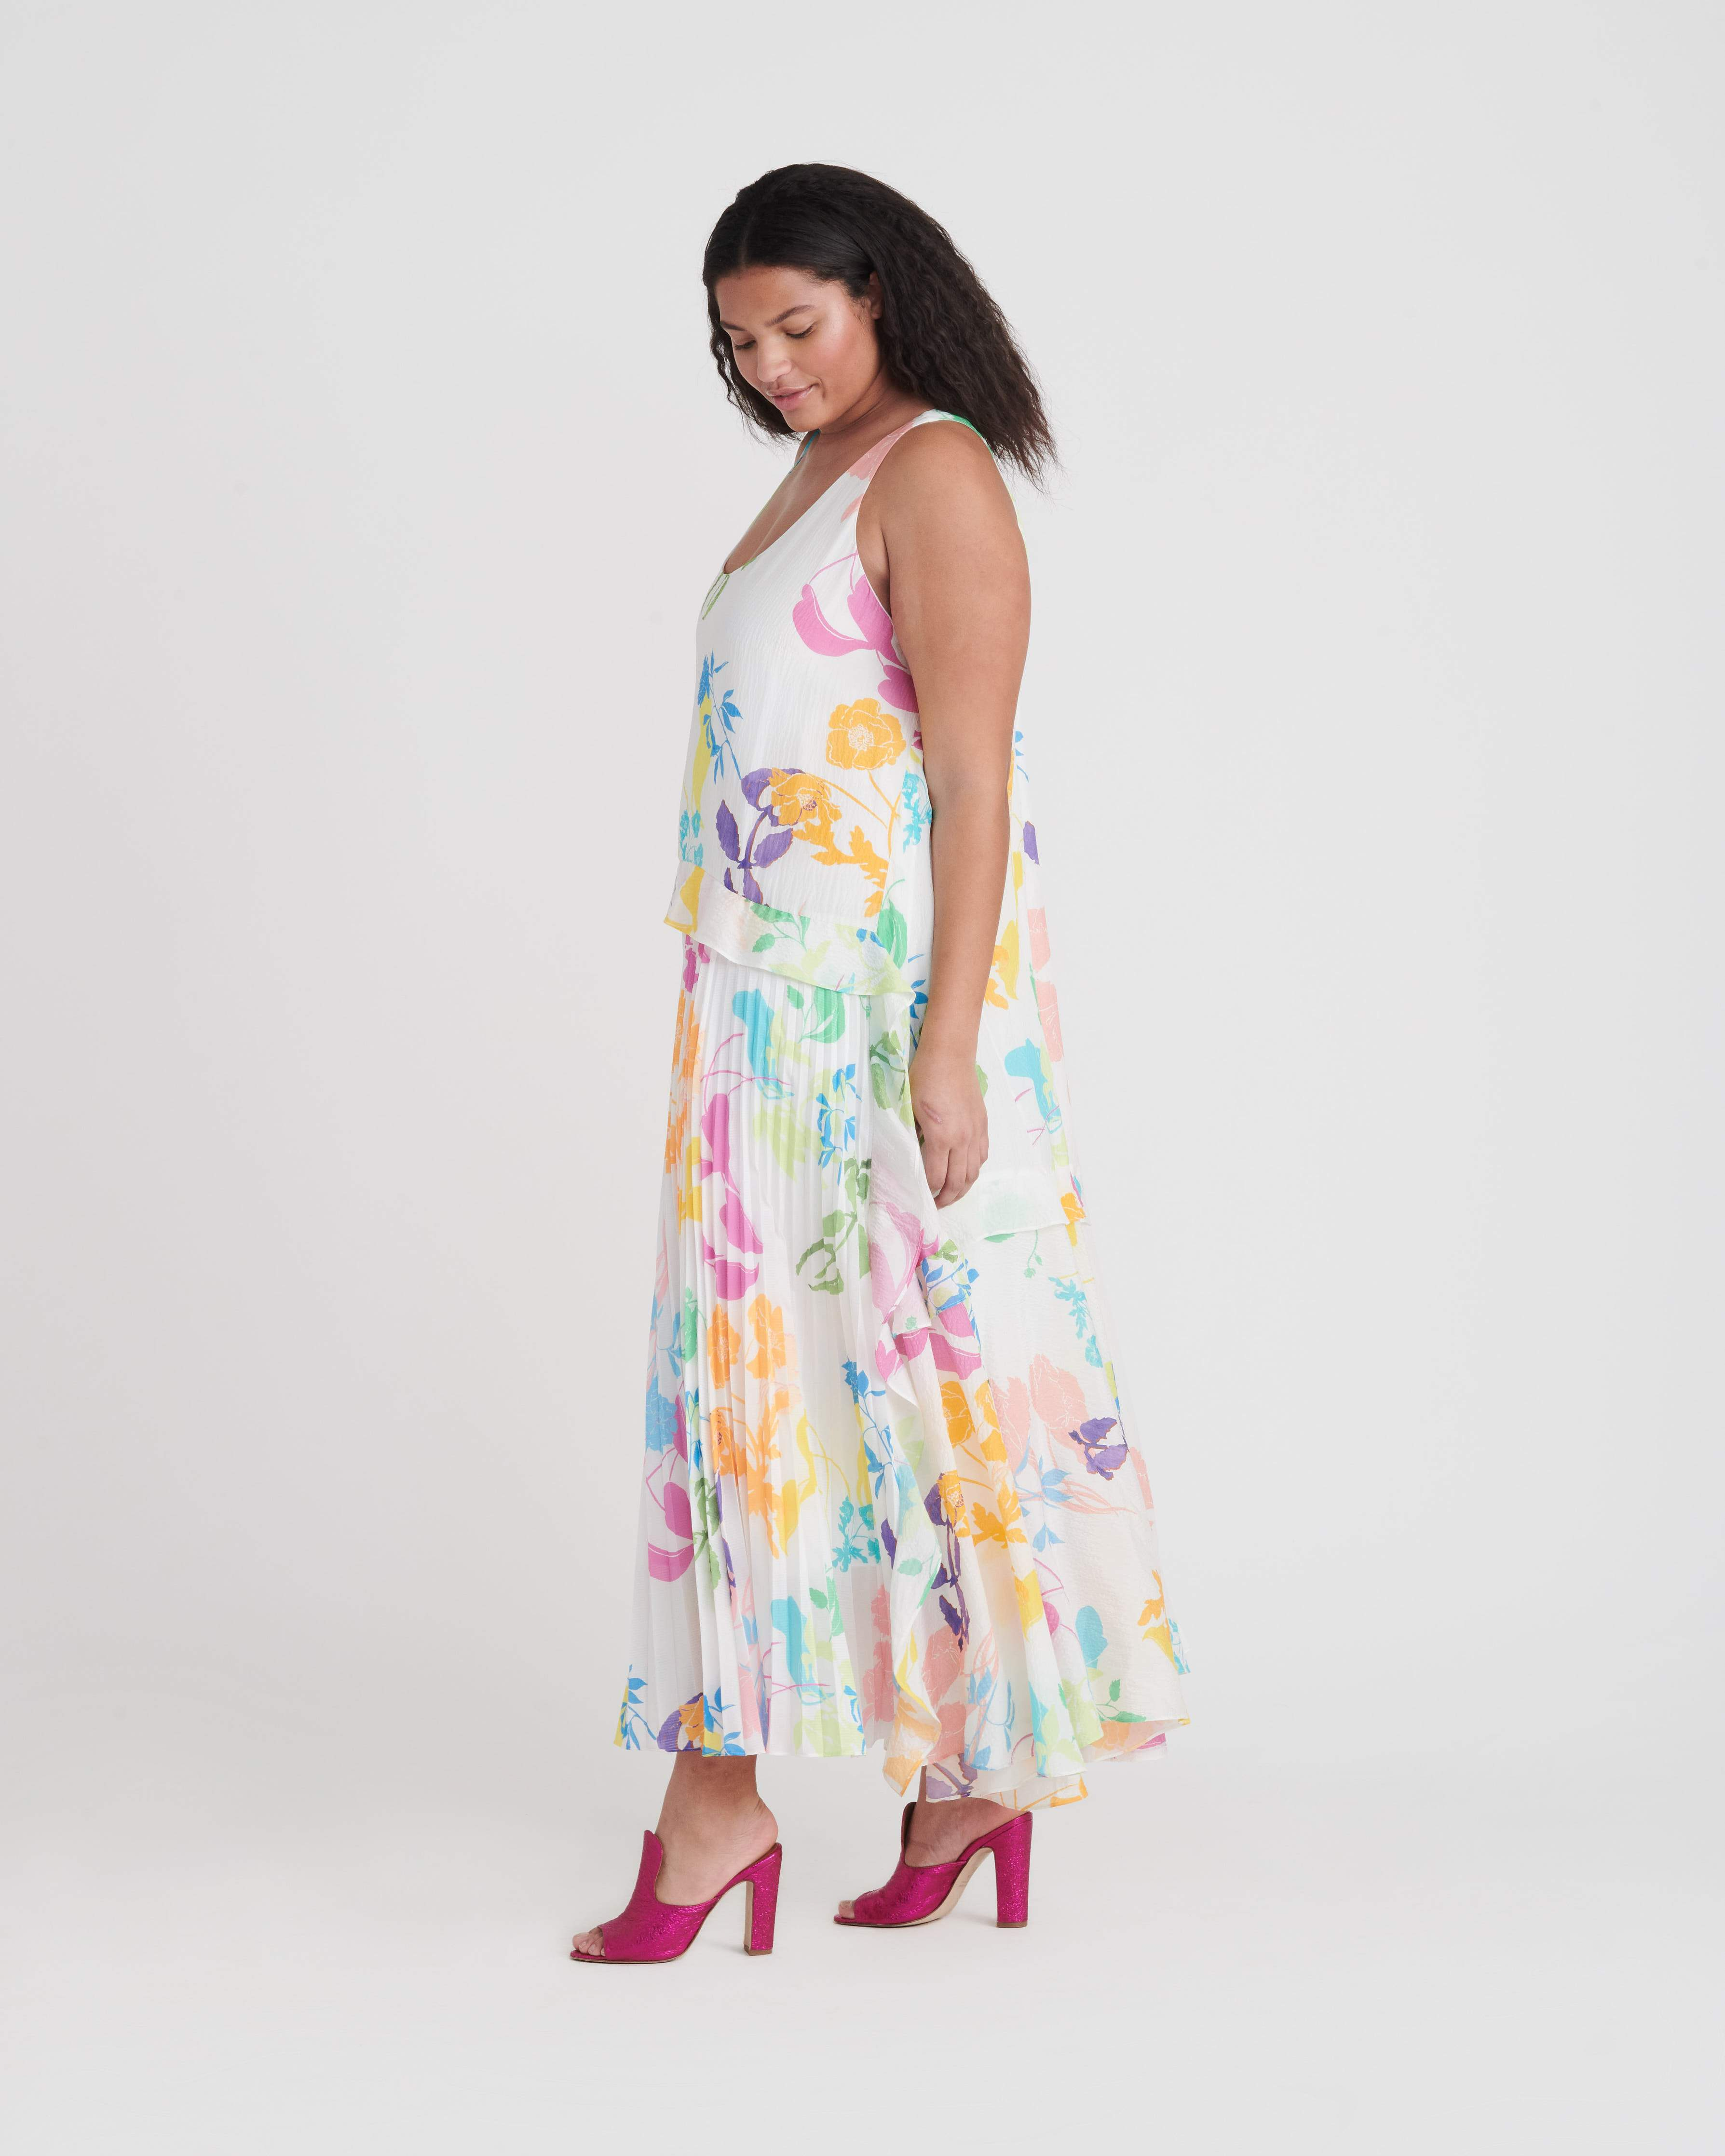 Colette Dress by Tanya Taylor - 5